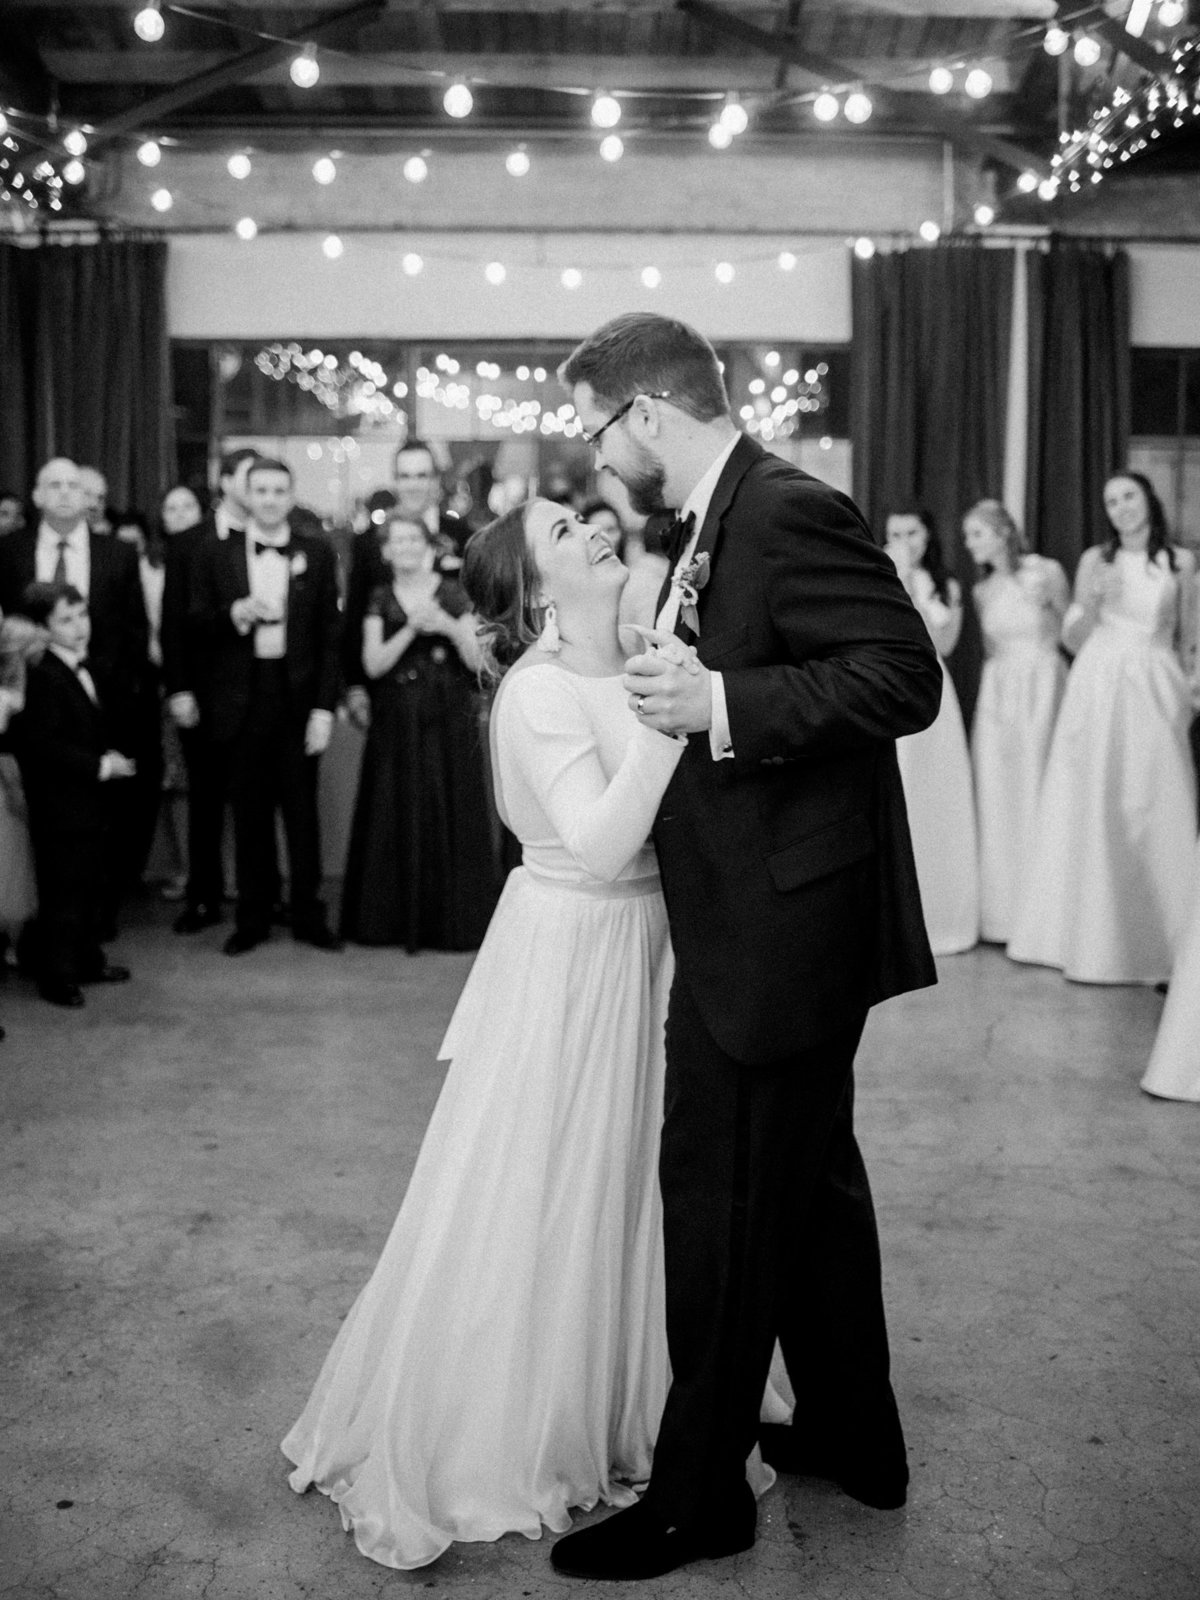 Courtney Hanson Photography - Festive Holiday Wedding in Dallas at Hickory Street Annex-4368